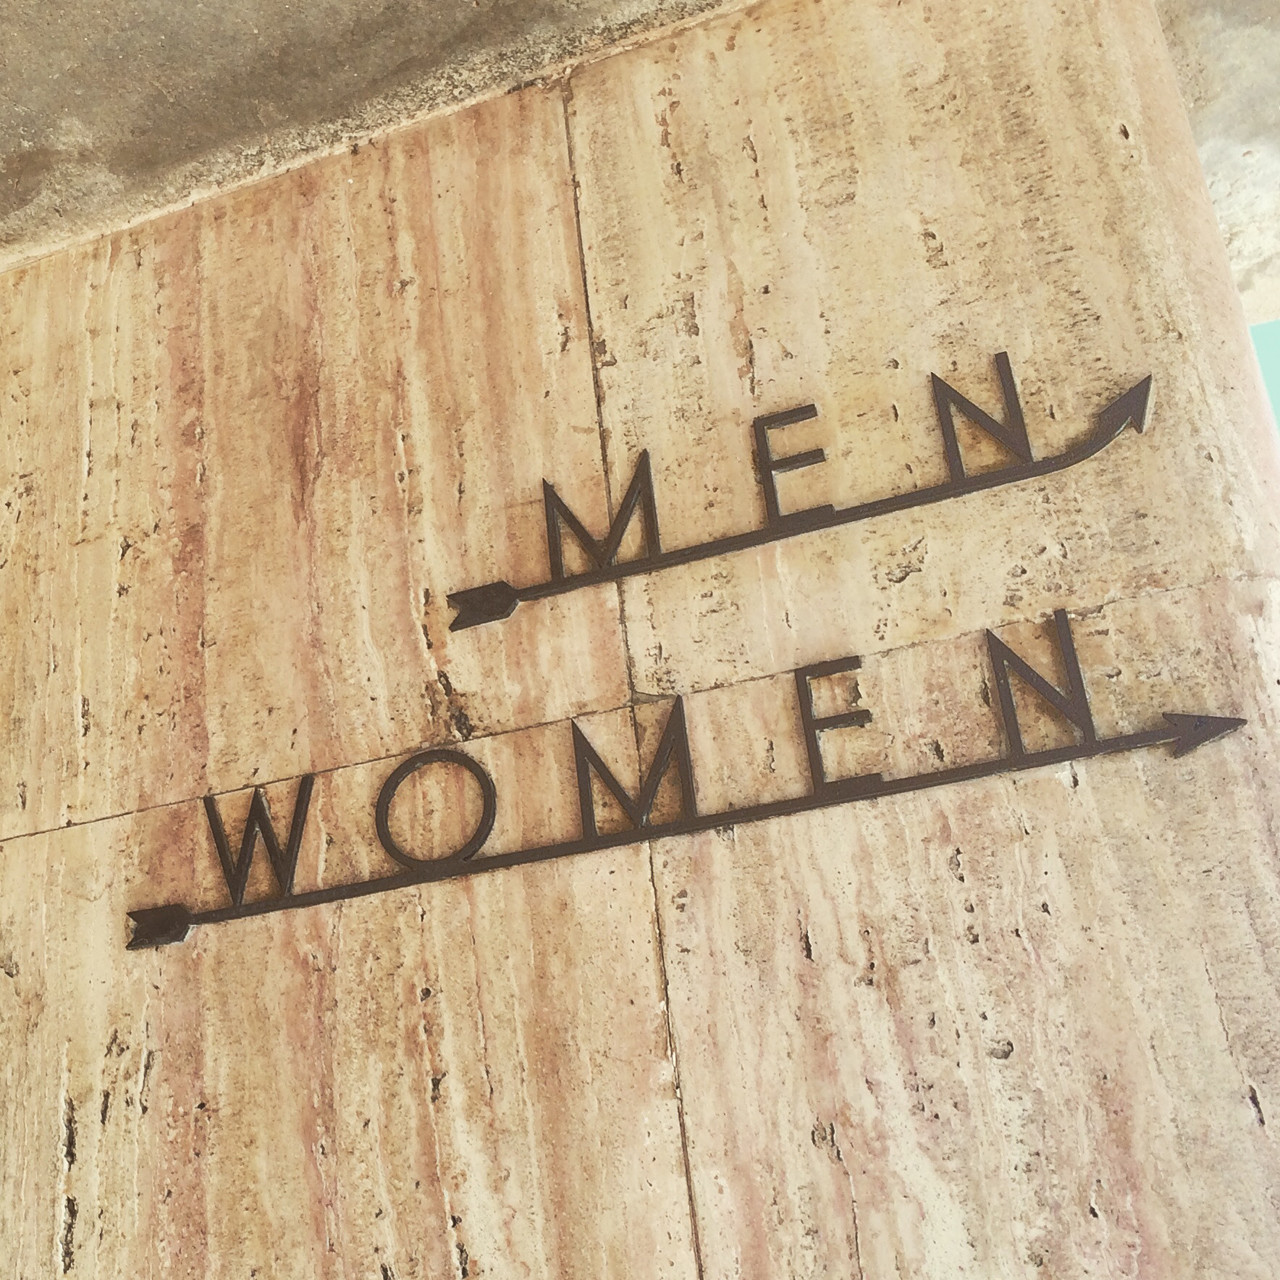 Love this font at Hoover Dam.